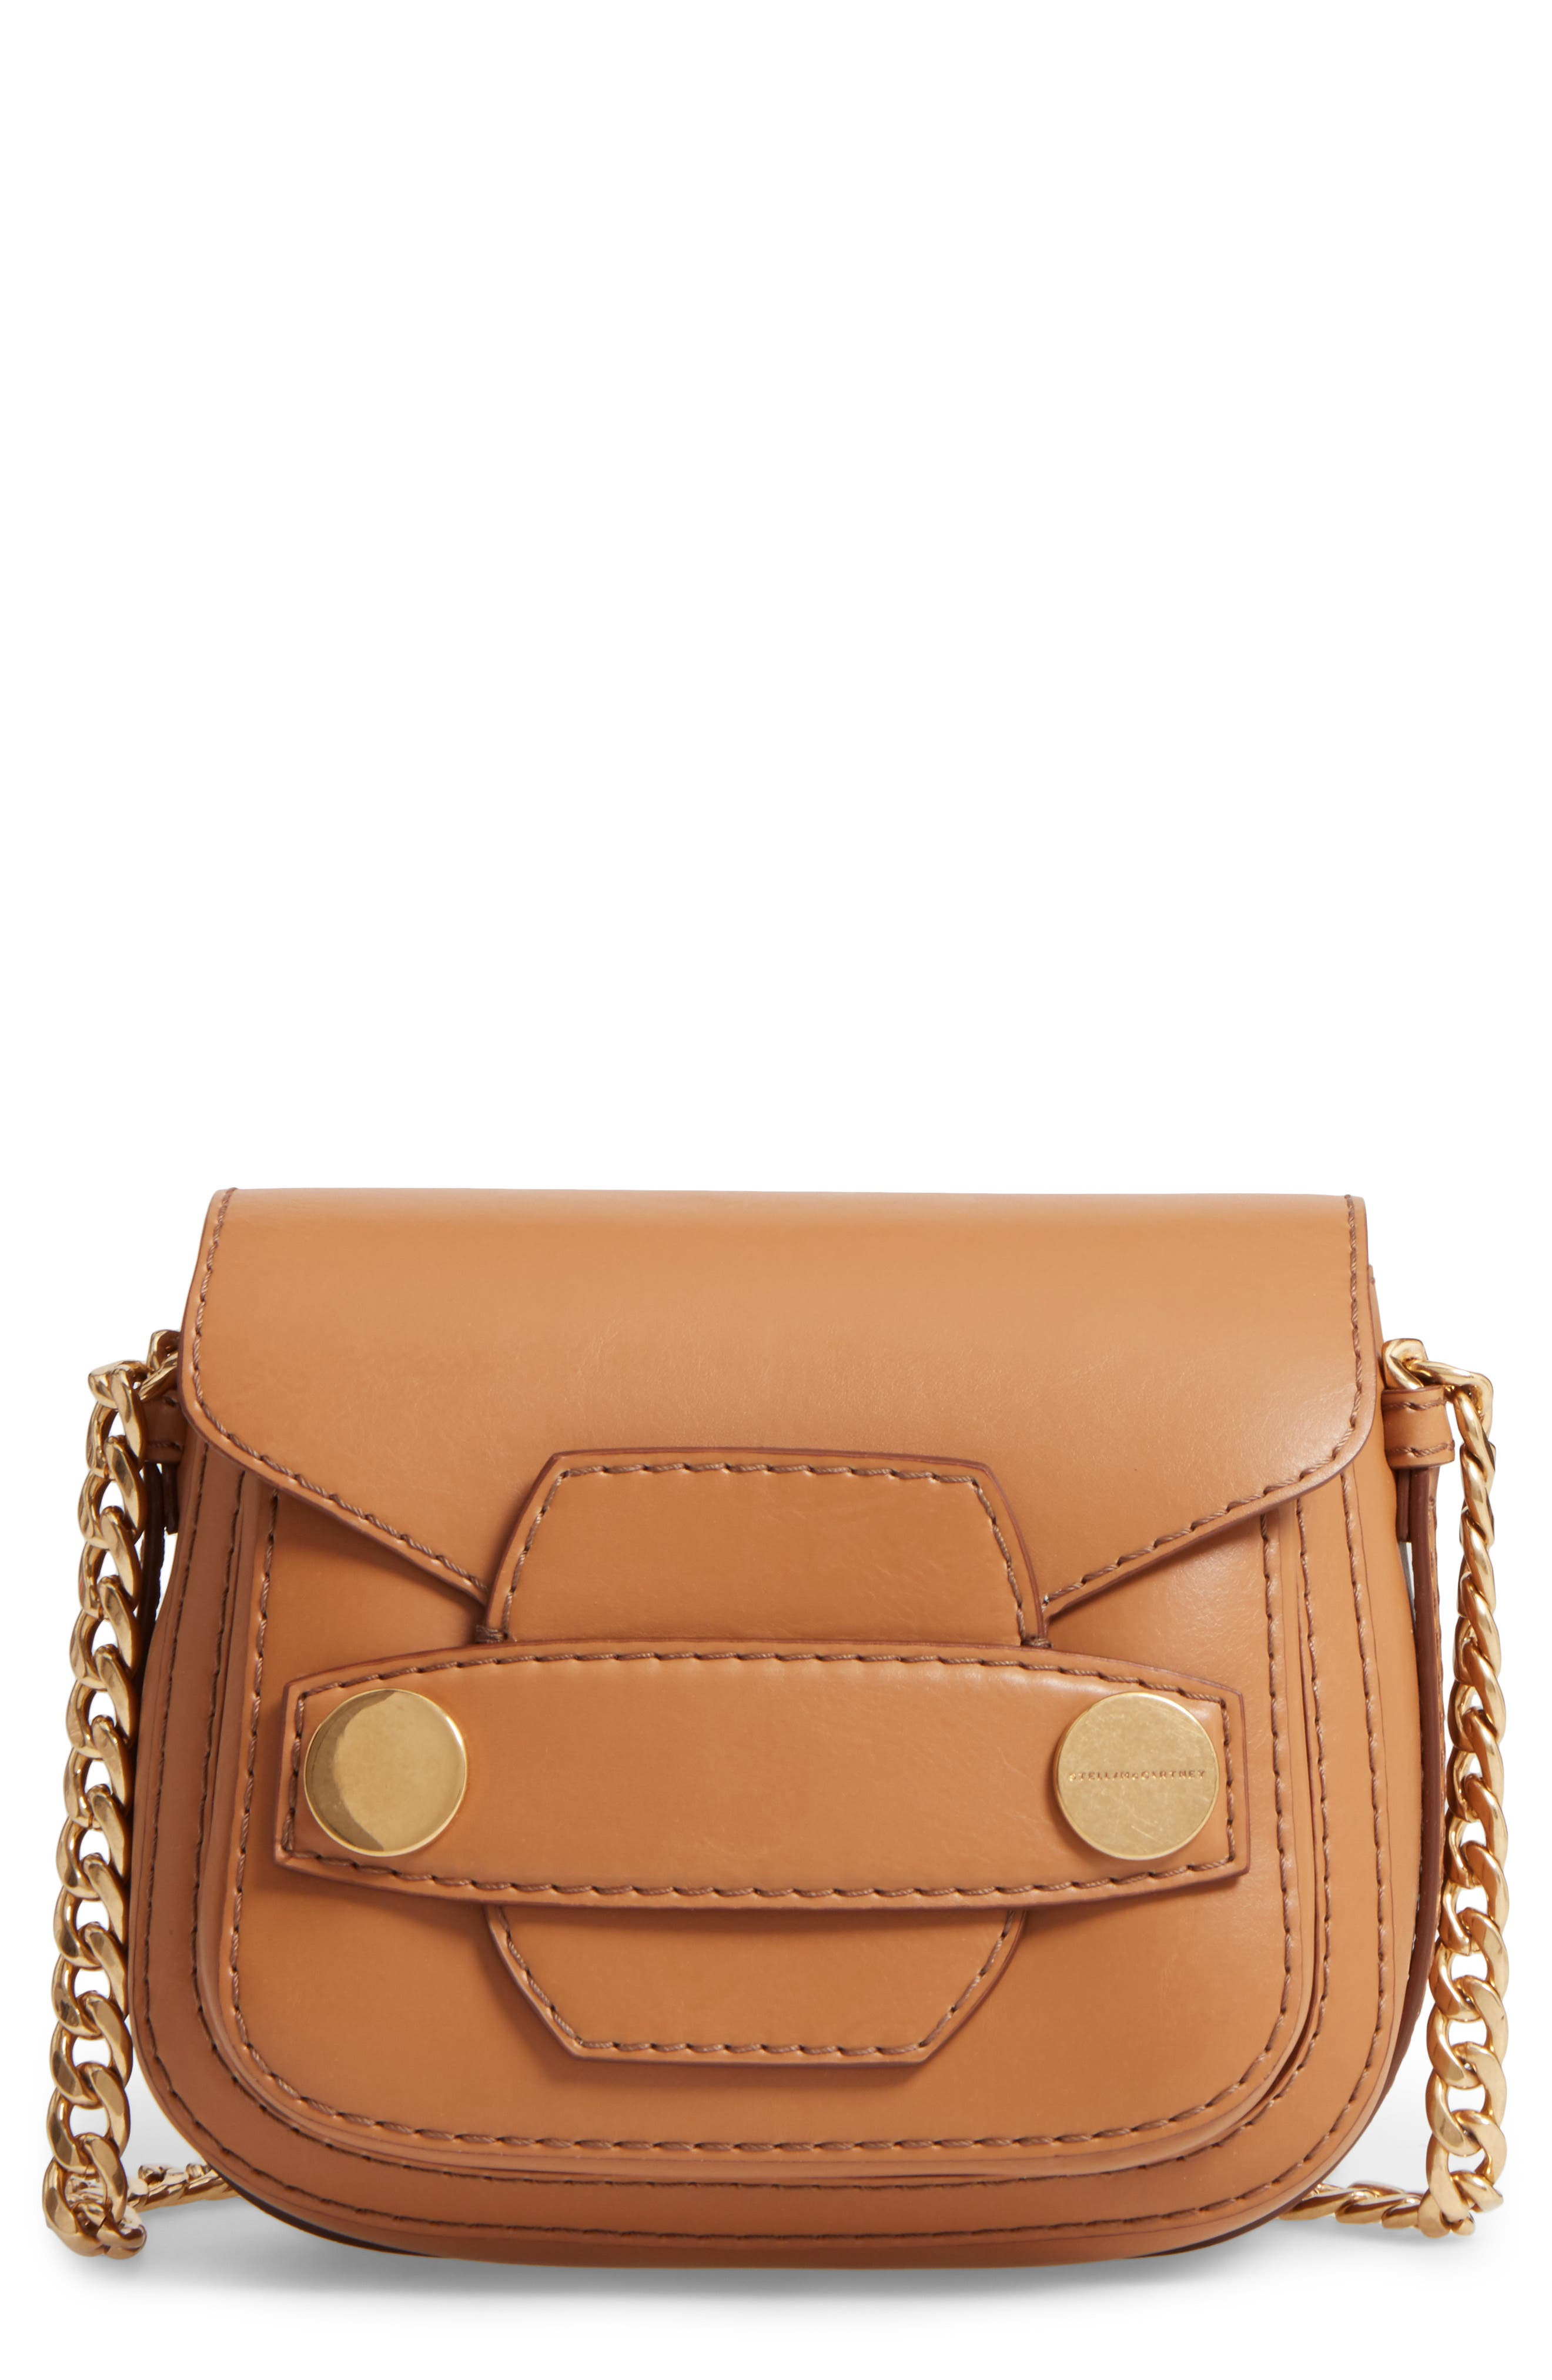 Textured Faux Leather Crossbody Bag,                             Main thumbnail 1, color,                             Camel